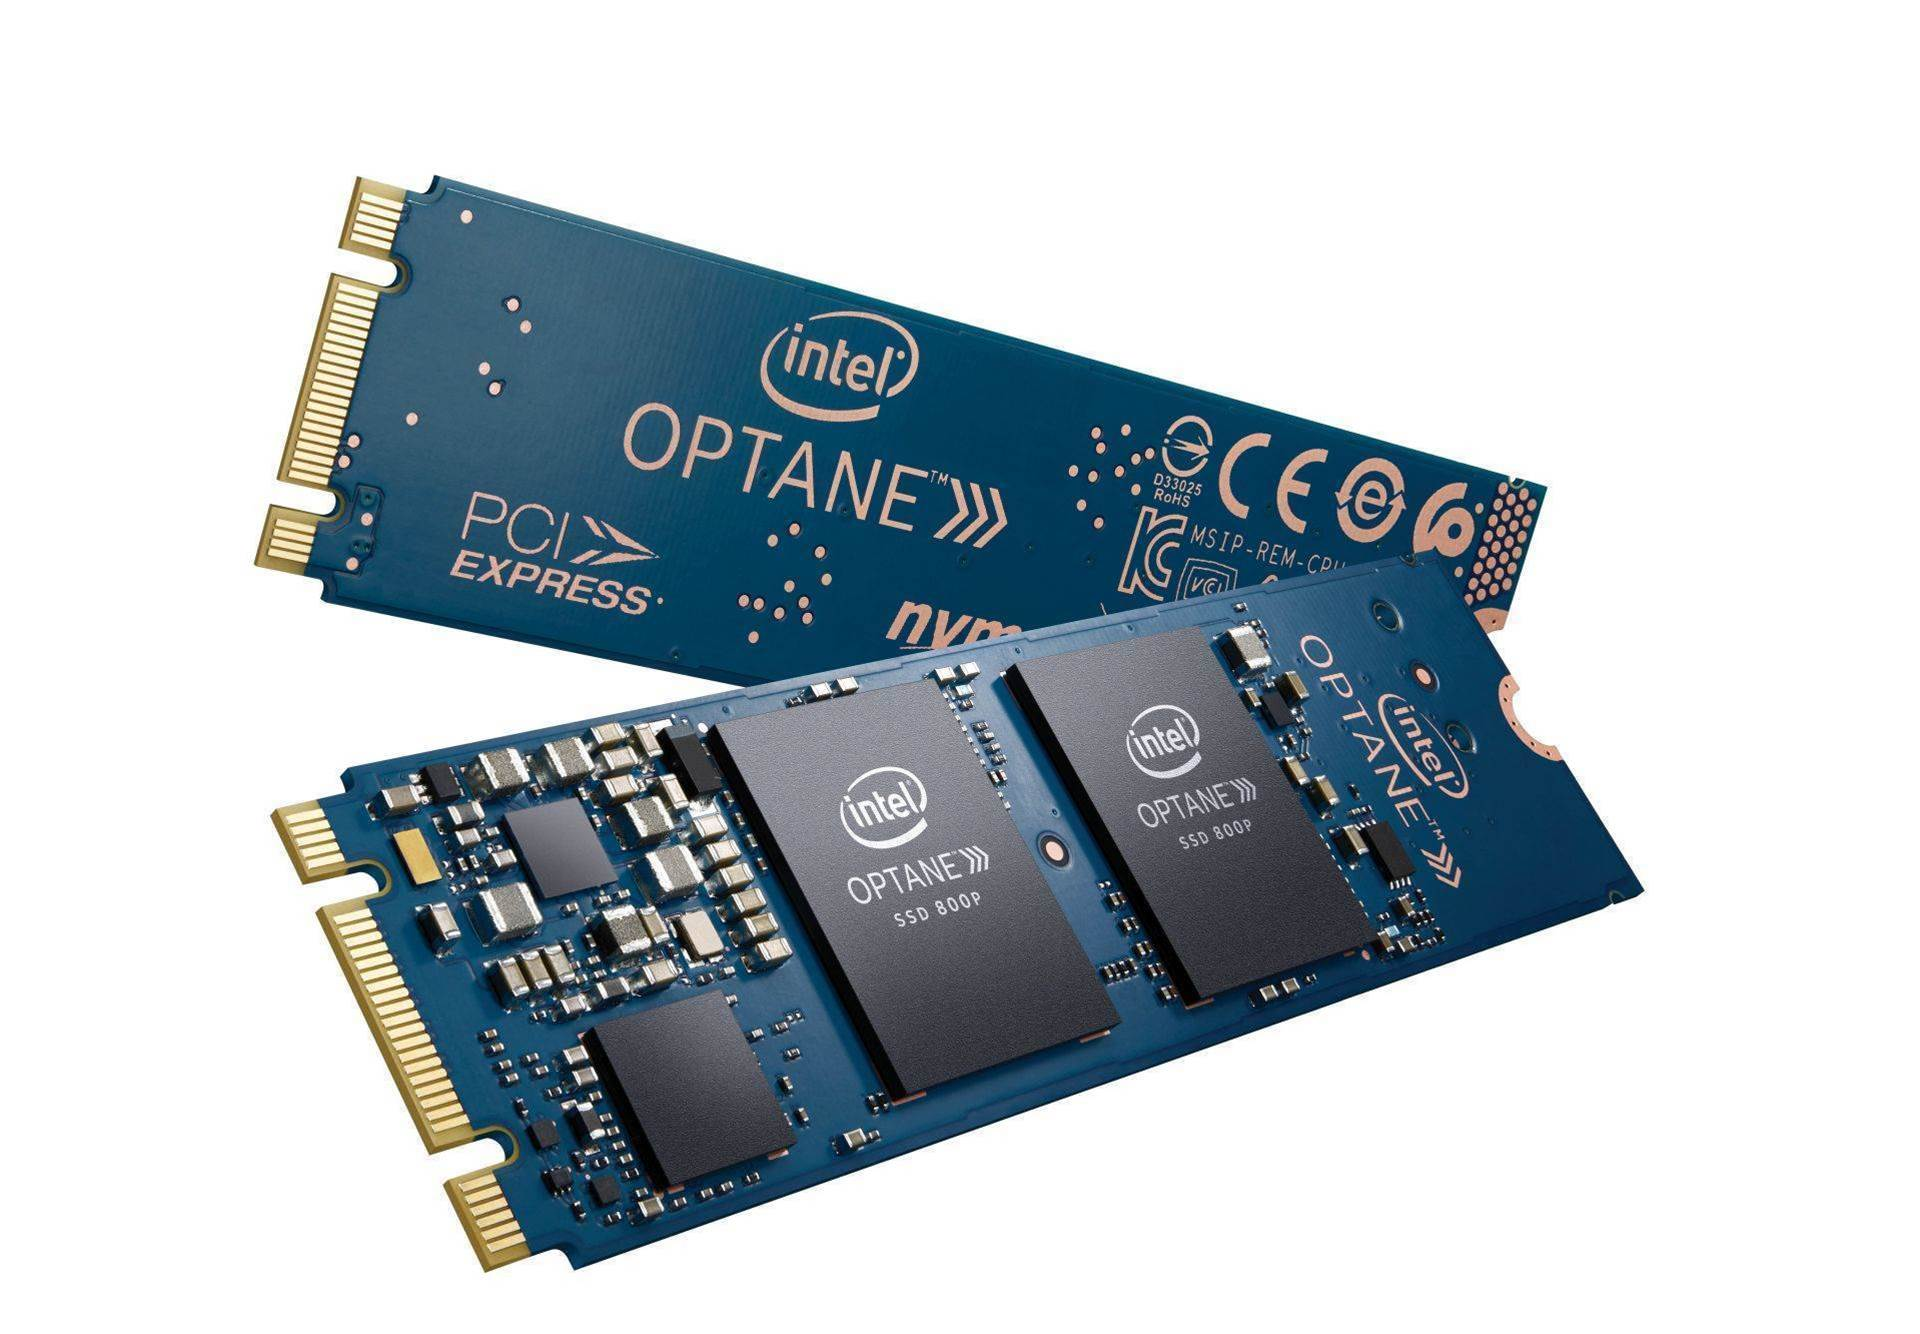 Review: Intel Optane 800P